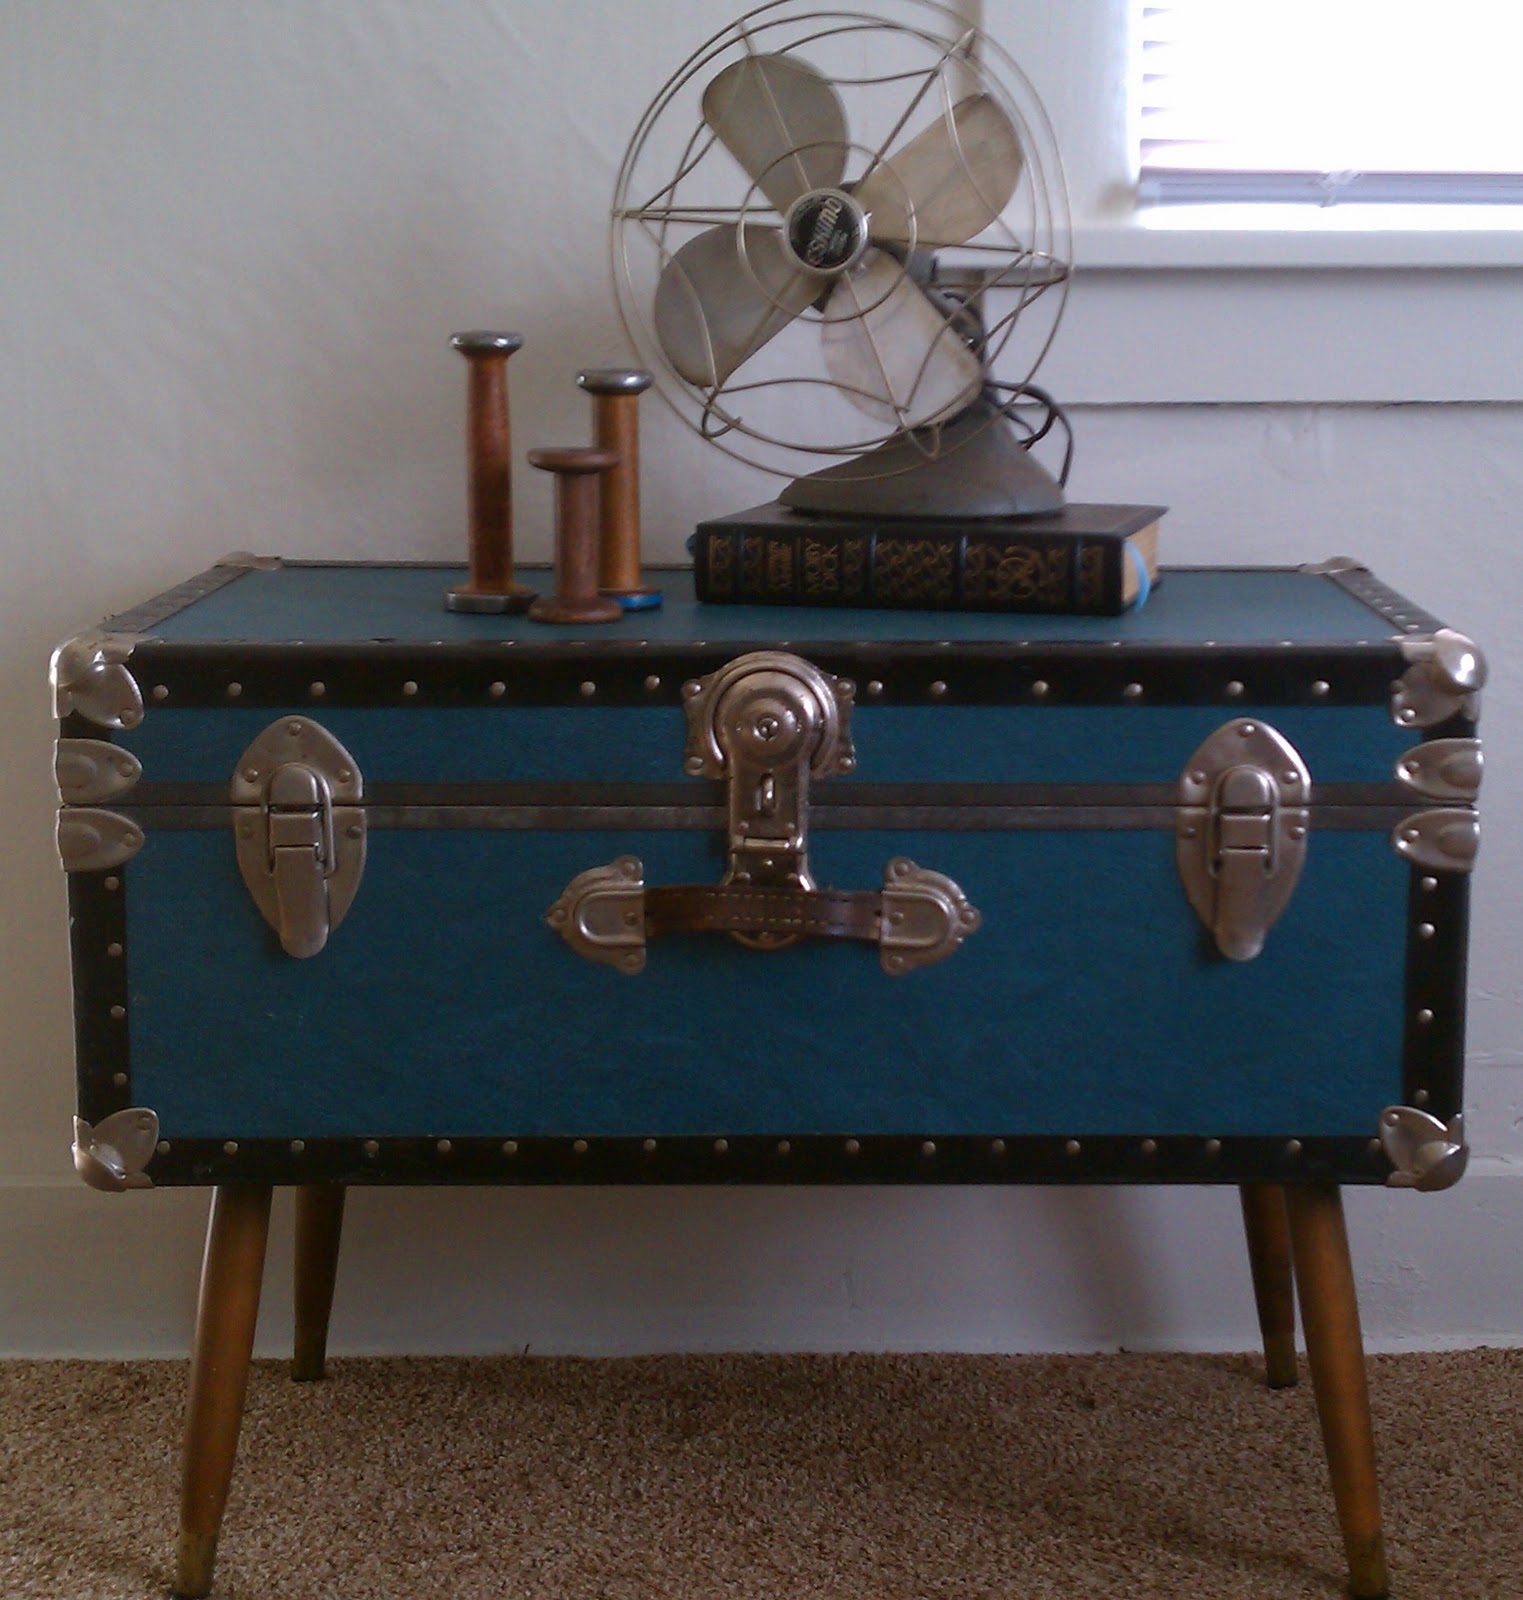 Low stand fan on steamer trunk coffee table in bedroom for Bedroom coffee table